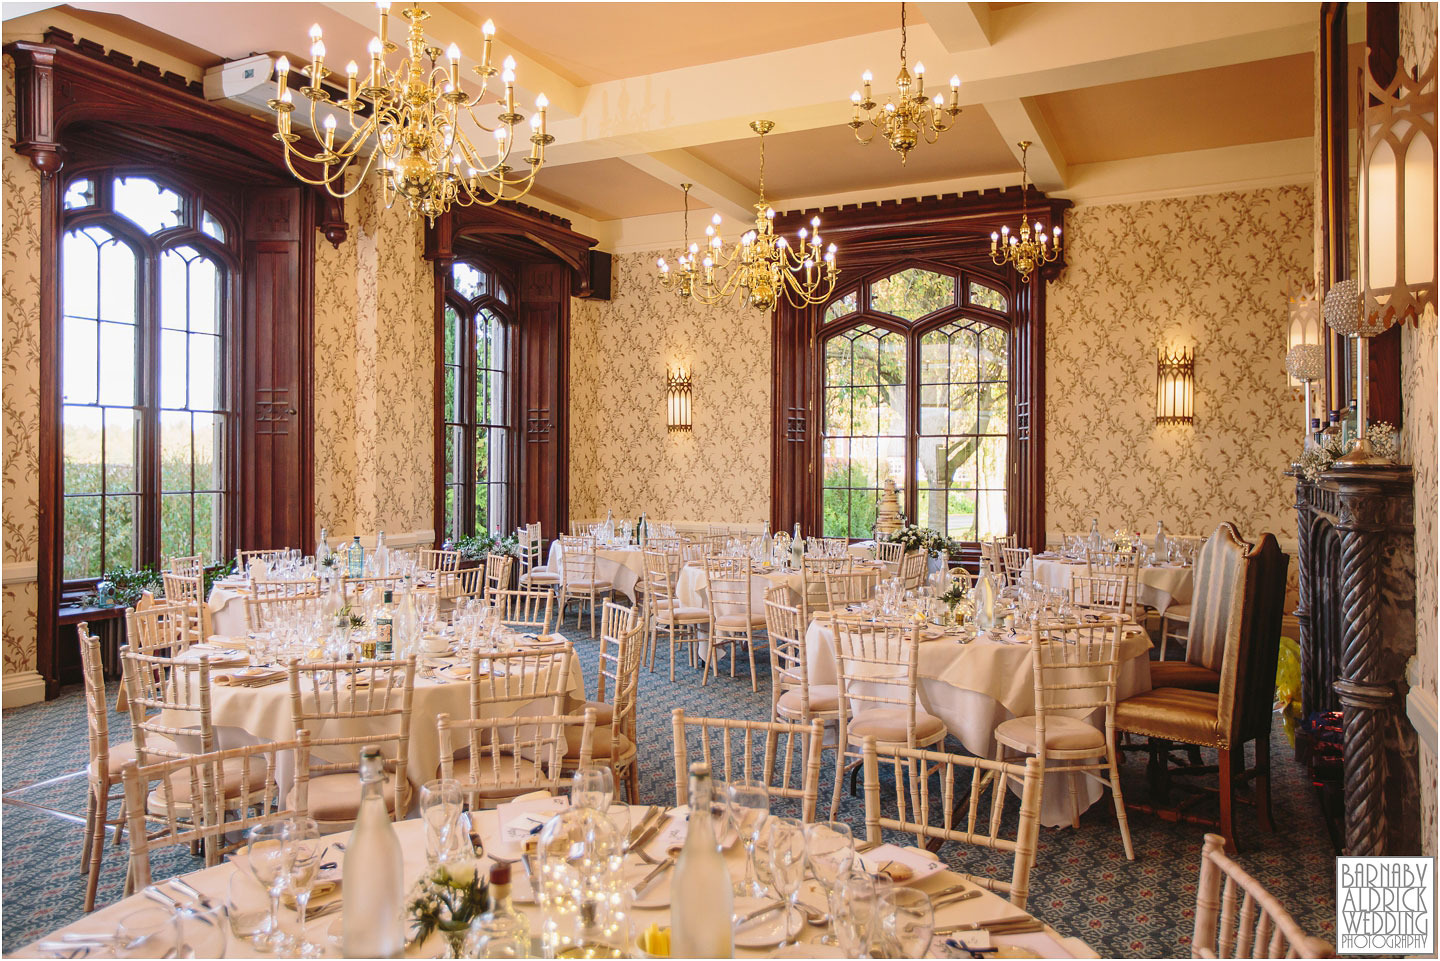 Wedding breakfast venue details at a Rowton Castle wedding, Shropshire Wedding Photographer, Shrewsbury wedding venue, Amazing UK Castle Wedding